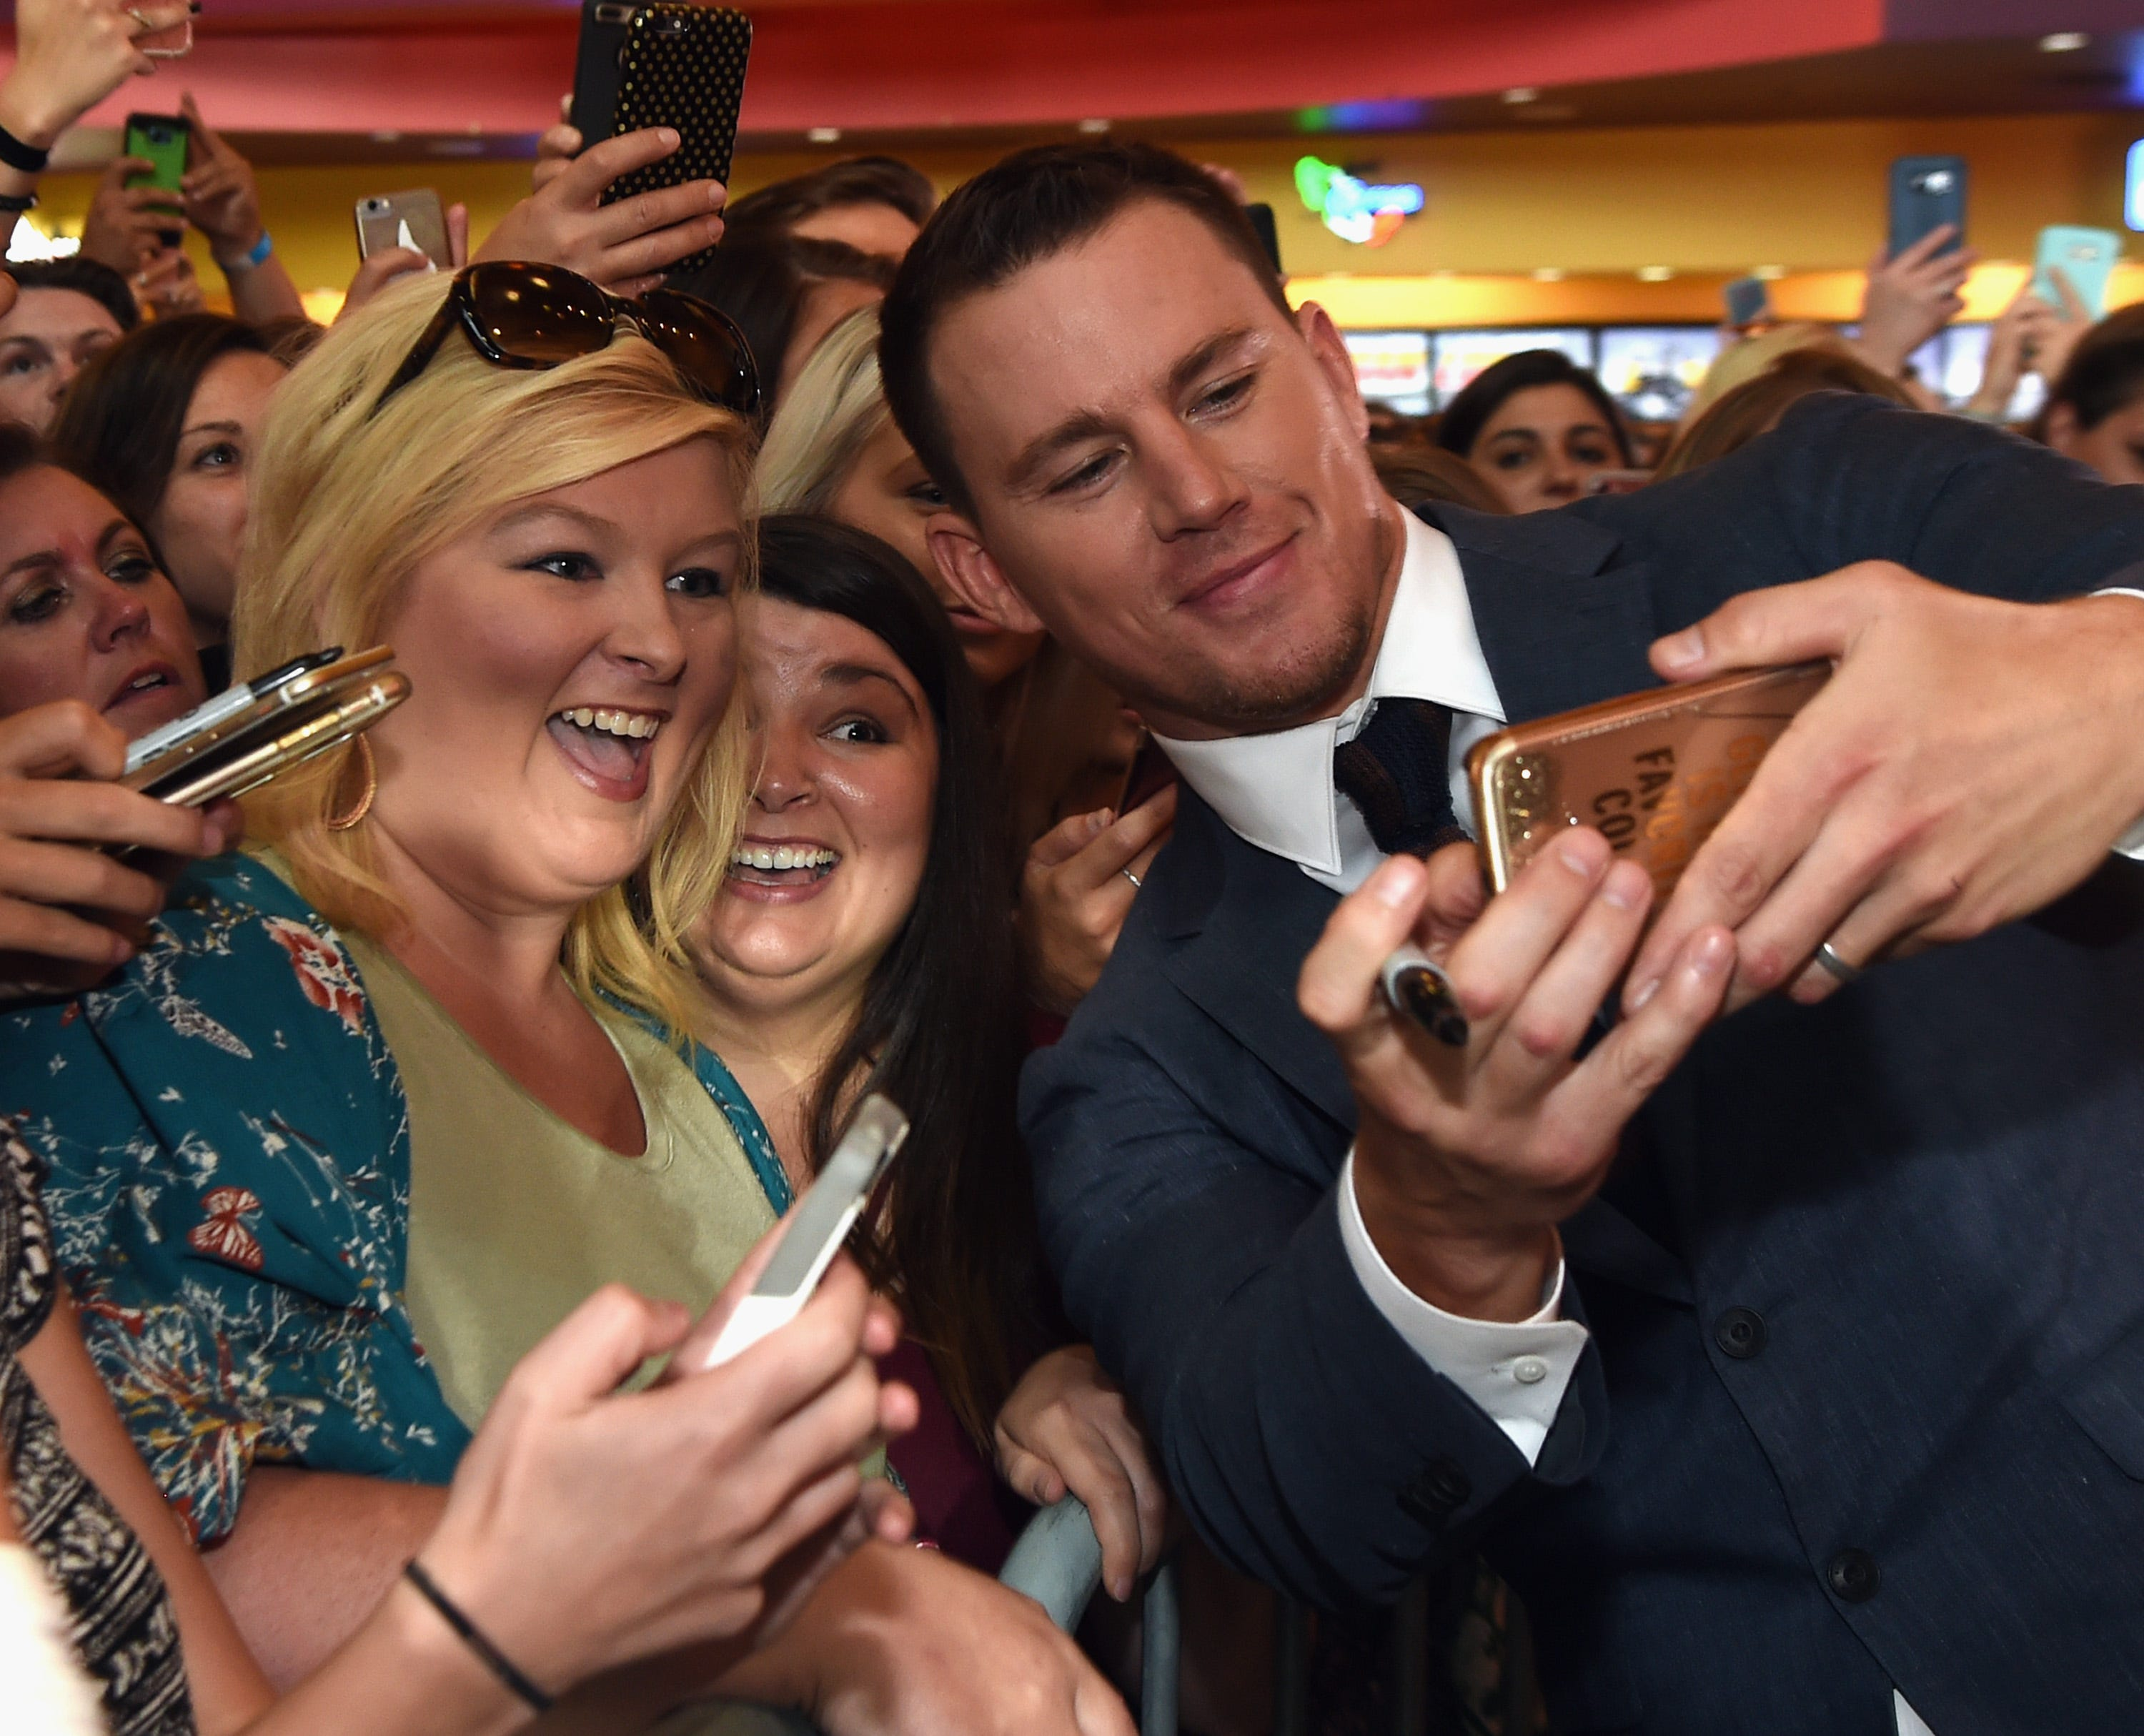 Watch Channing Tatum pull a 'Magic Mike' in a North Carolina gas station